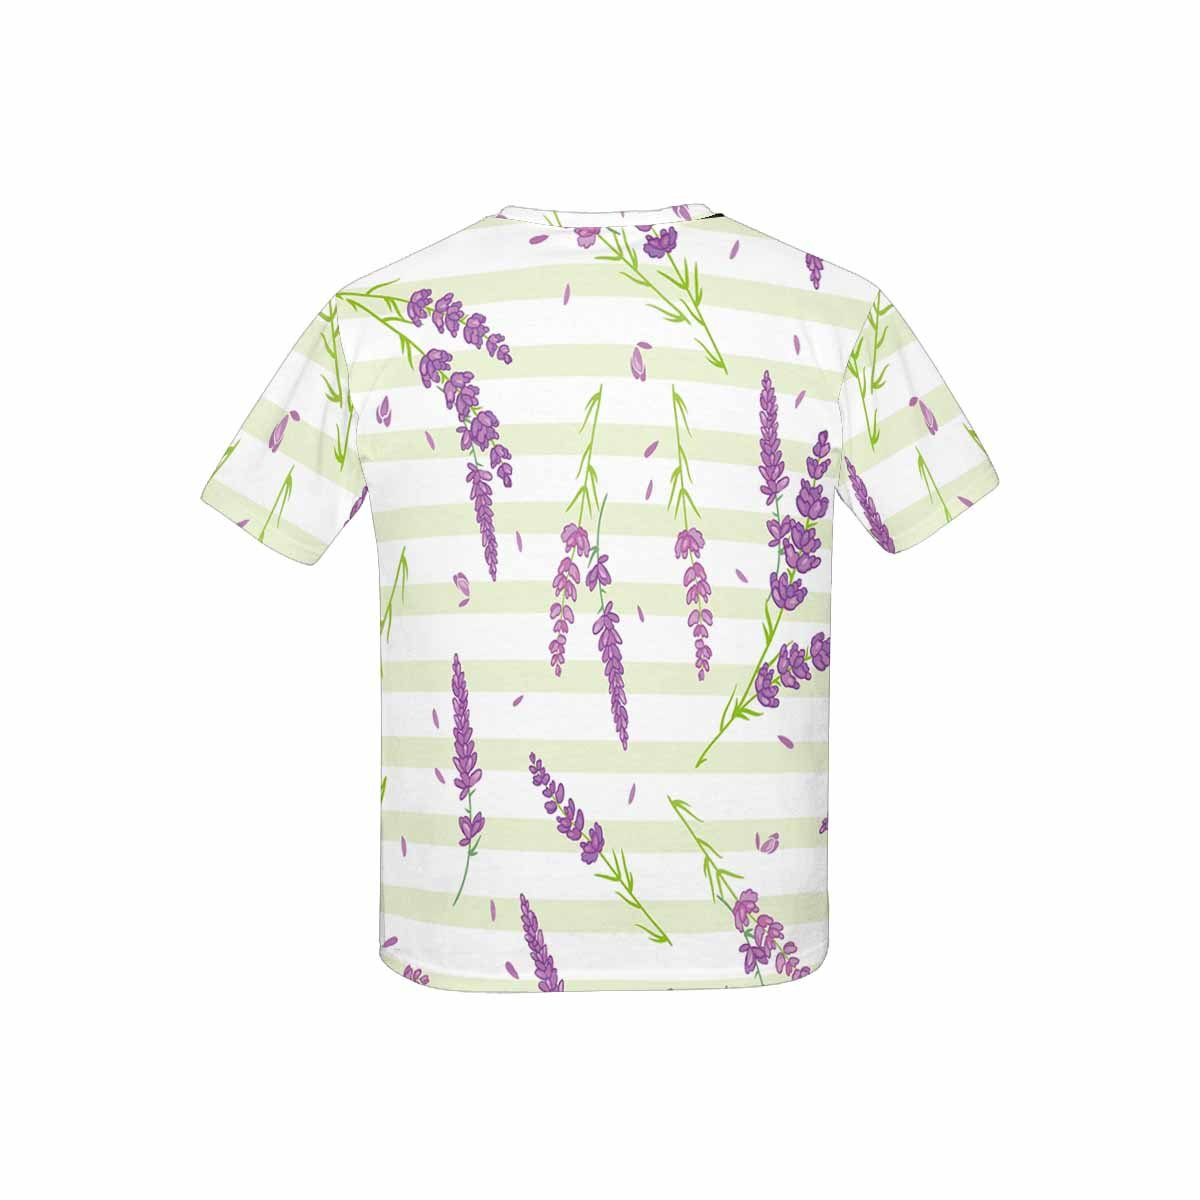 XS-XL INTERESTPRINT Childs T-Shirt Lavender Flowers Purple Green Sitripes